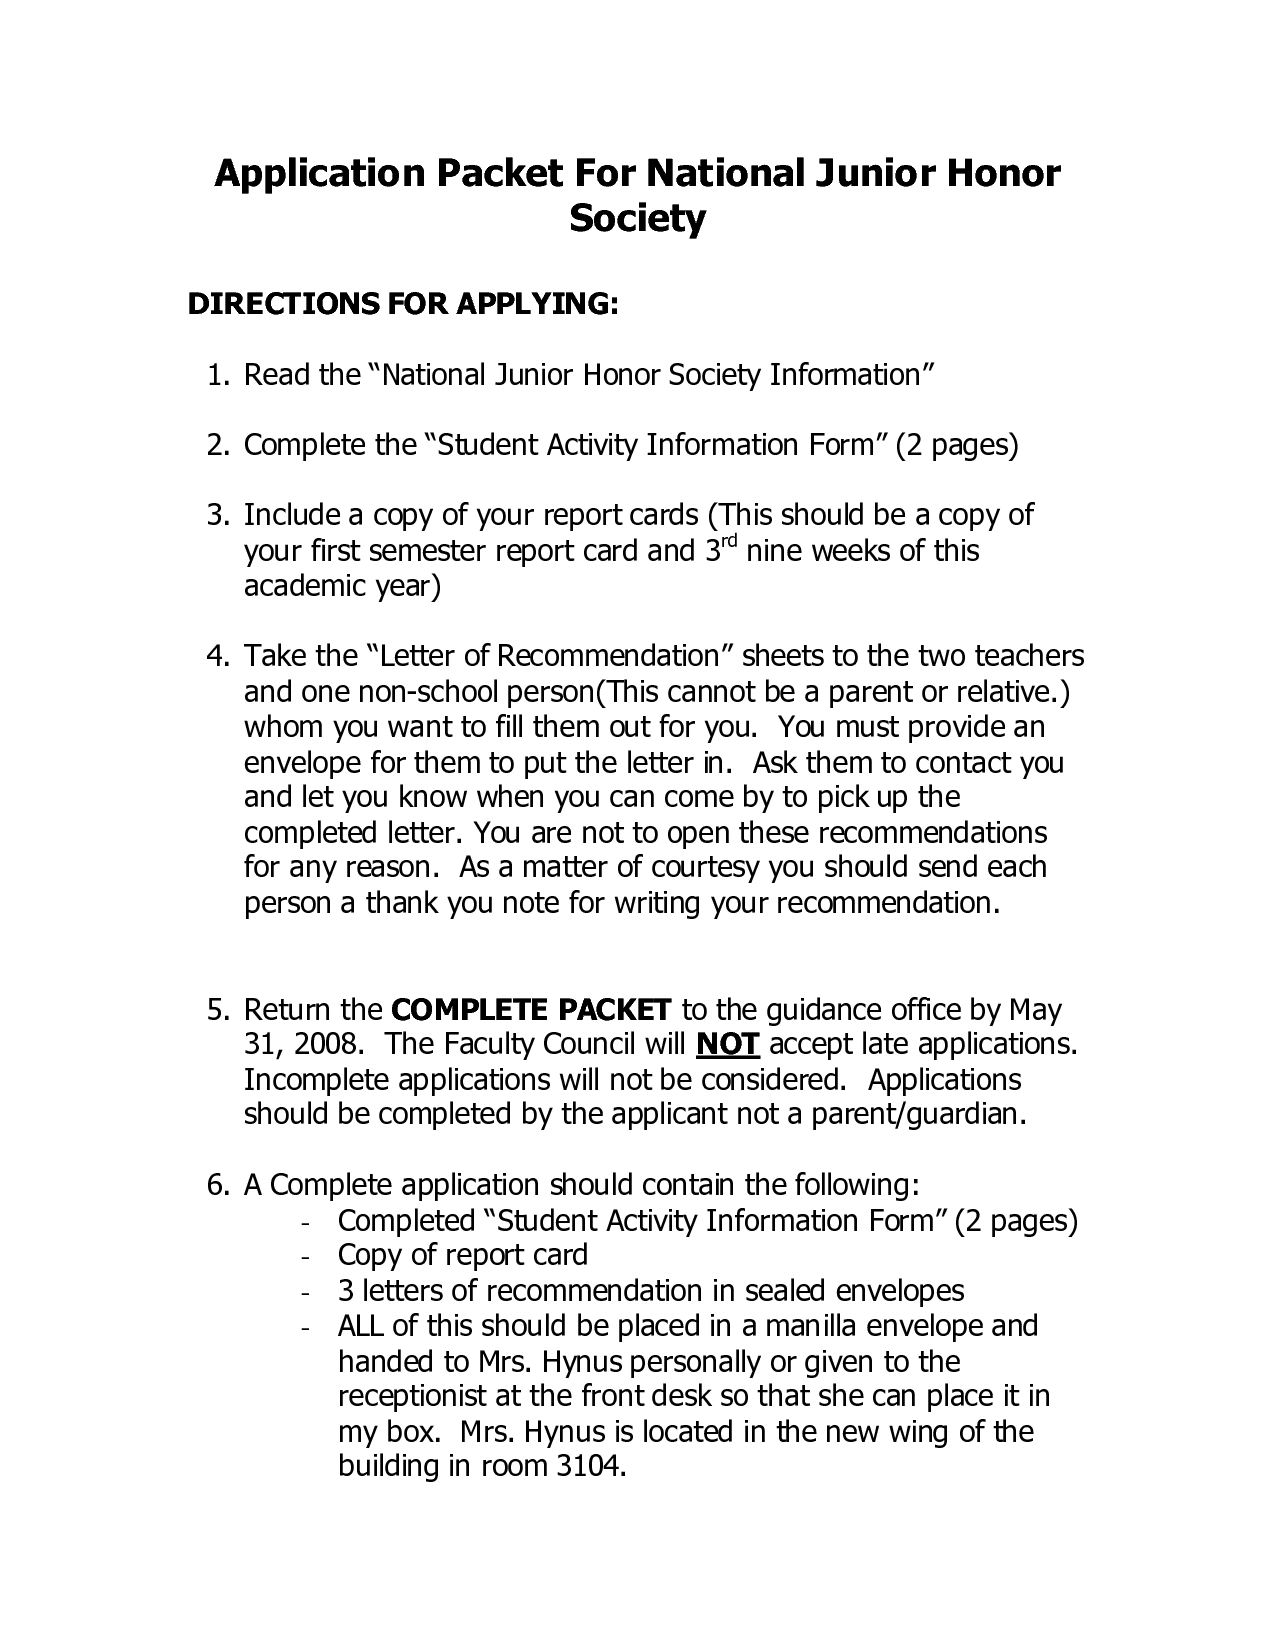 028 Letter Of Recommendation For High School Student National Honor Society Essays L Essay Example Nhs Top Application Prompt Stp Questions Conclusion Full